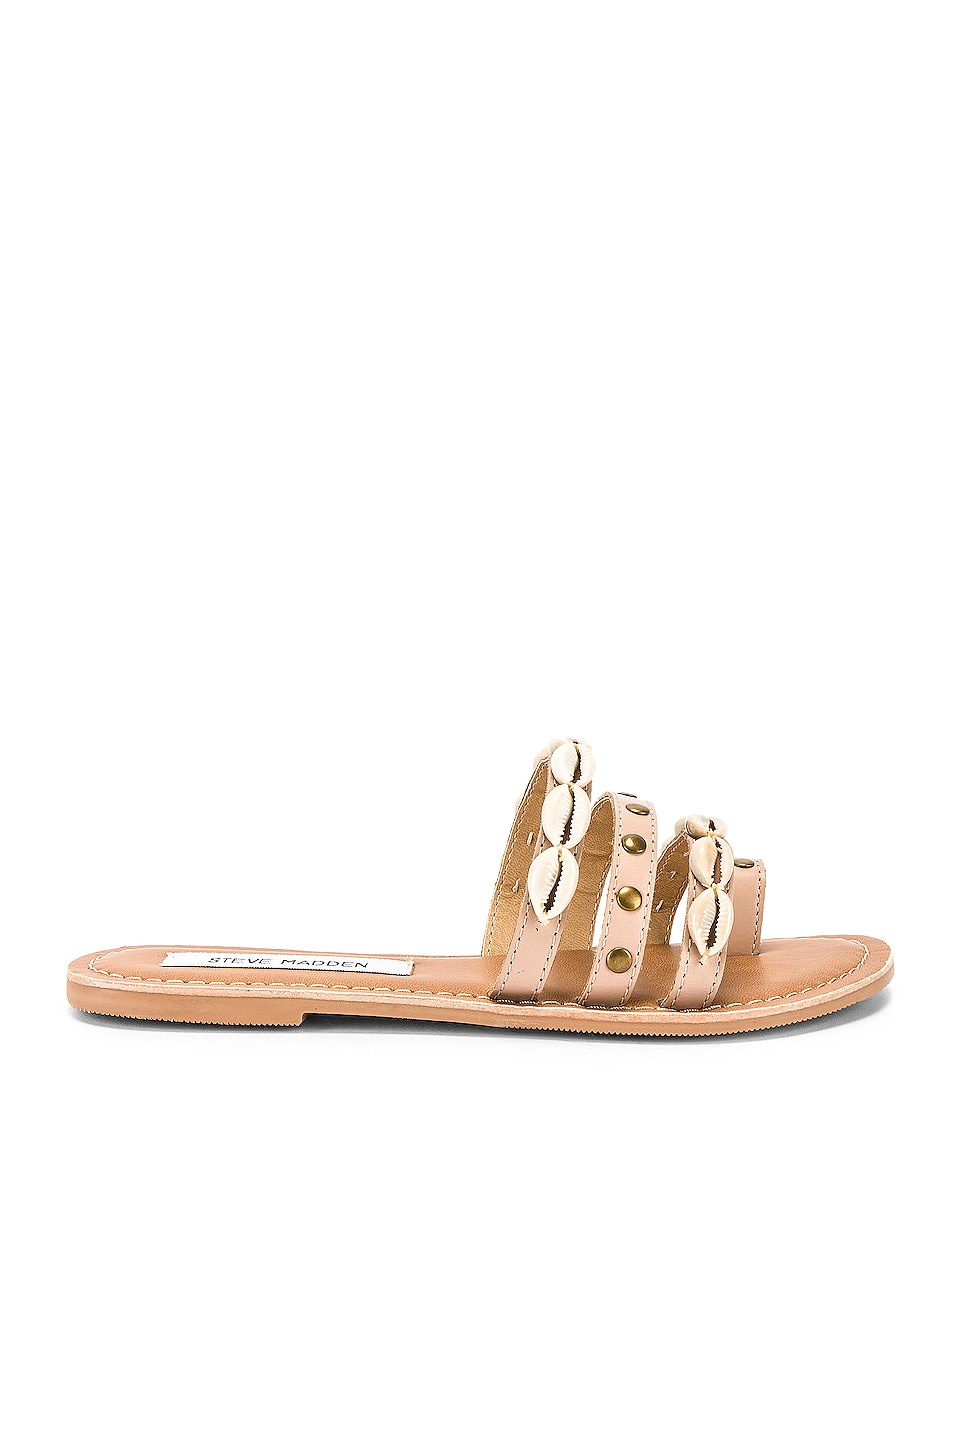 Steve Madden Seashore Slide in Blush Multi